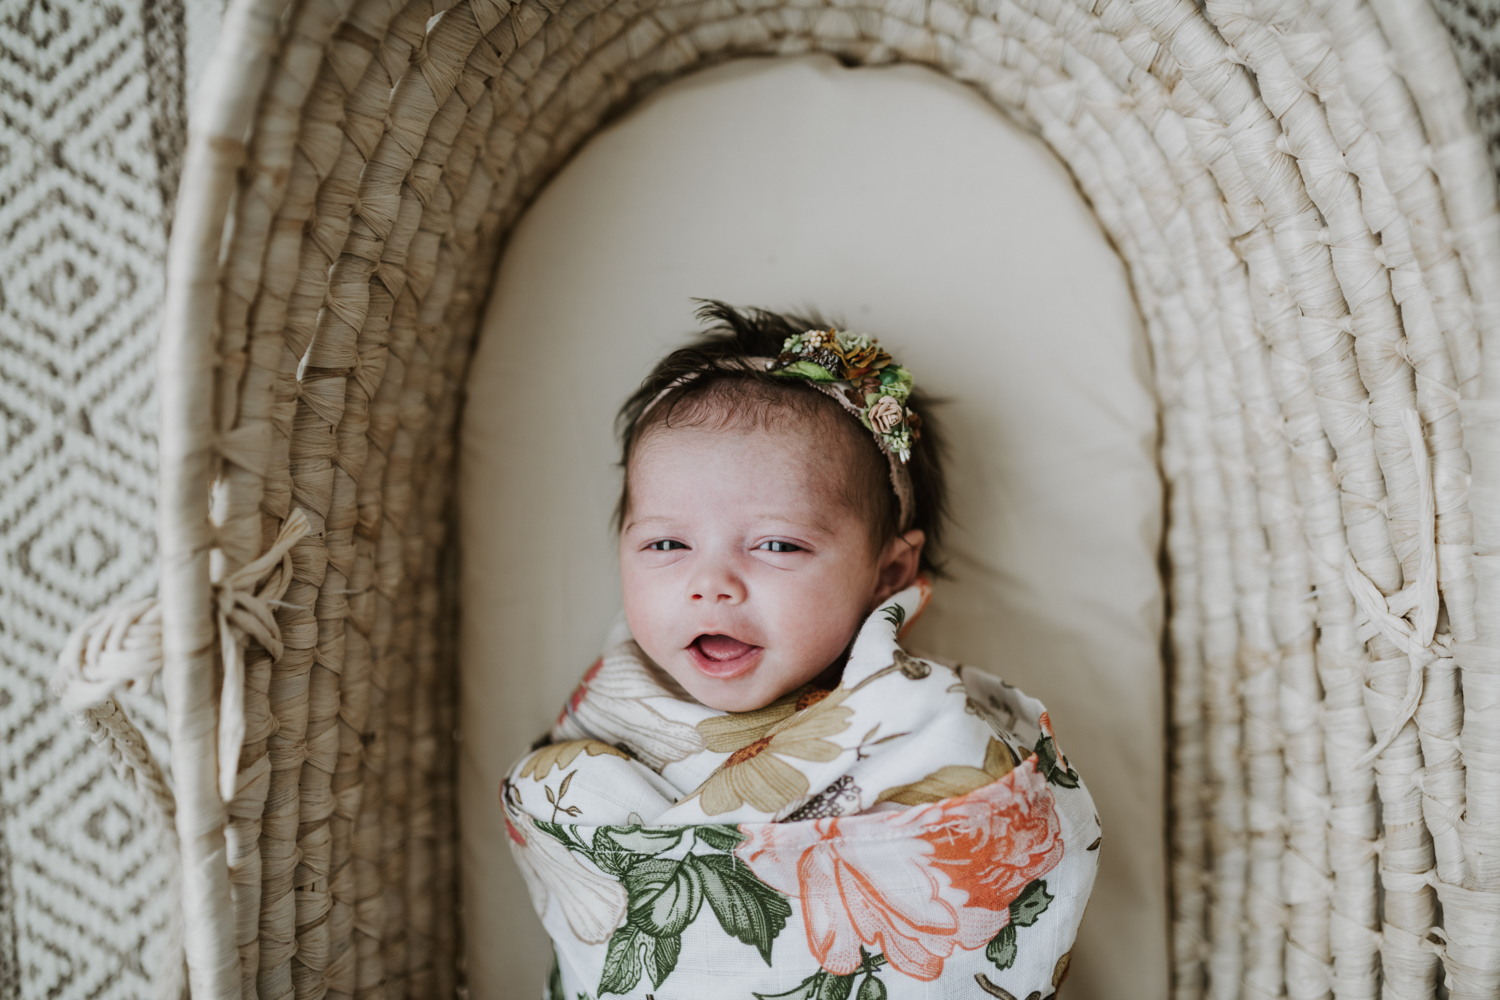 Newborn baby girl wrapped up in flower blanket while laying in bassinet